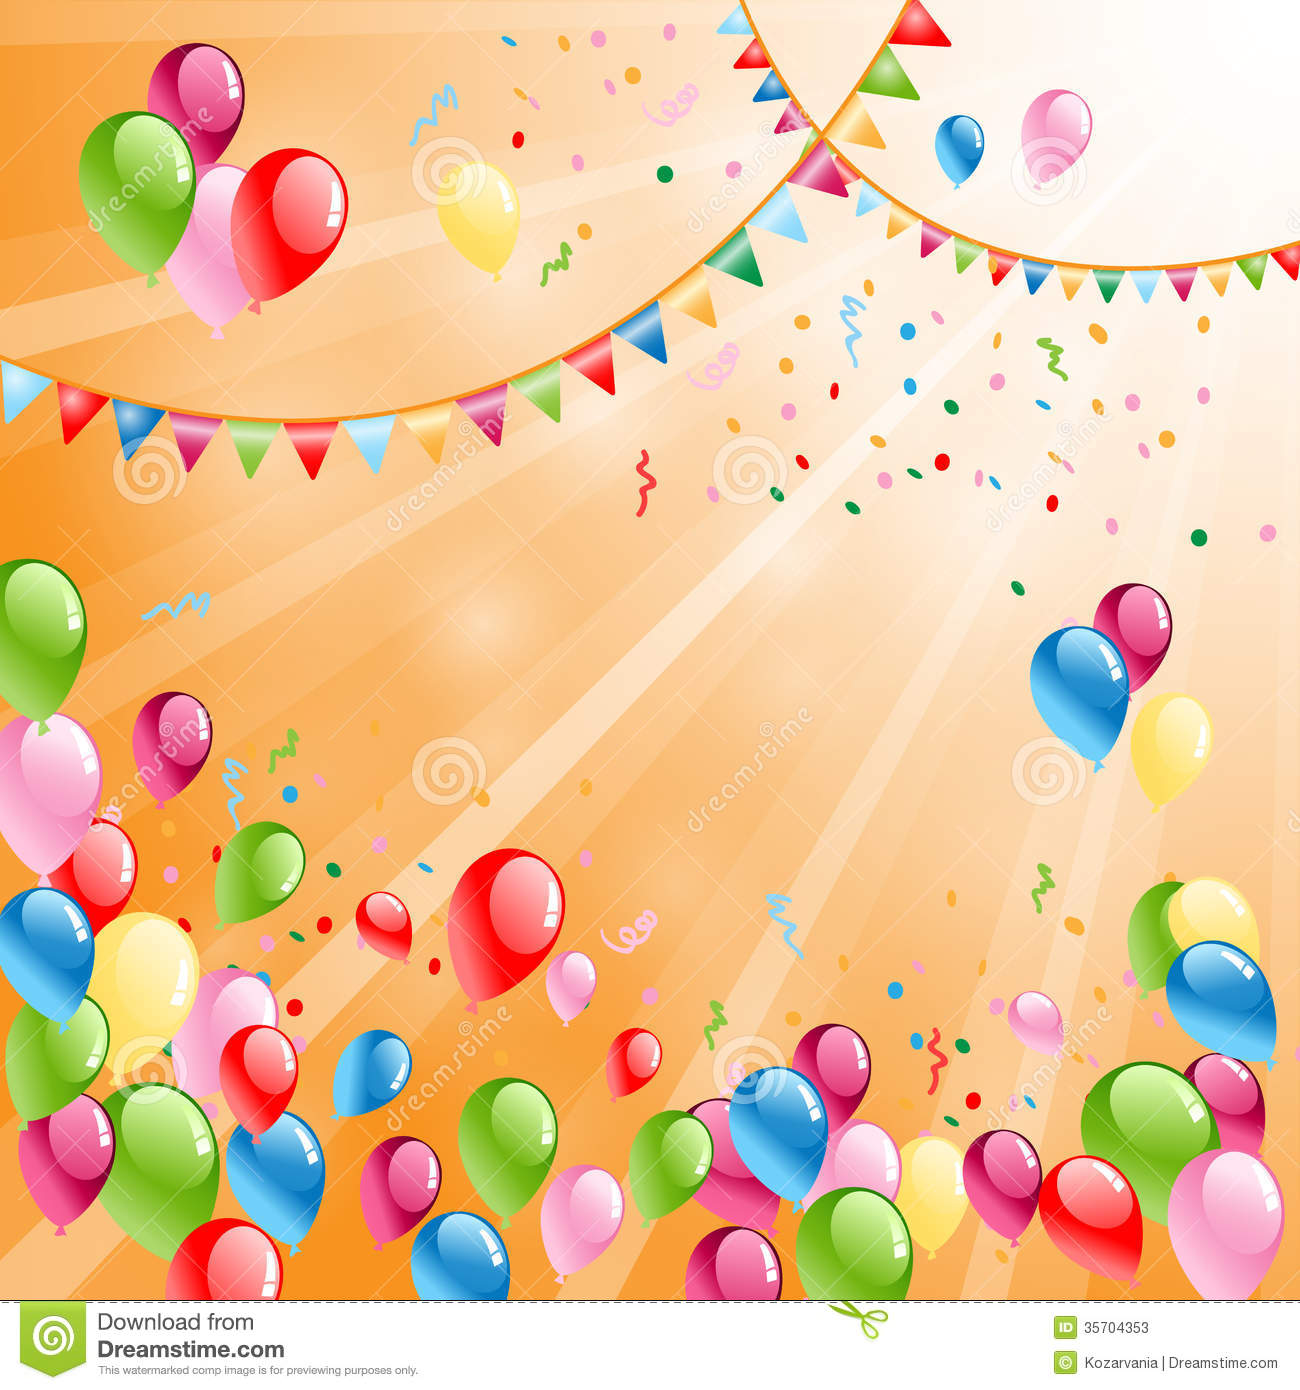 Beautiful celebratory background with colored balloons.